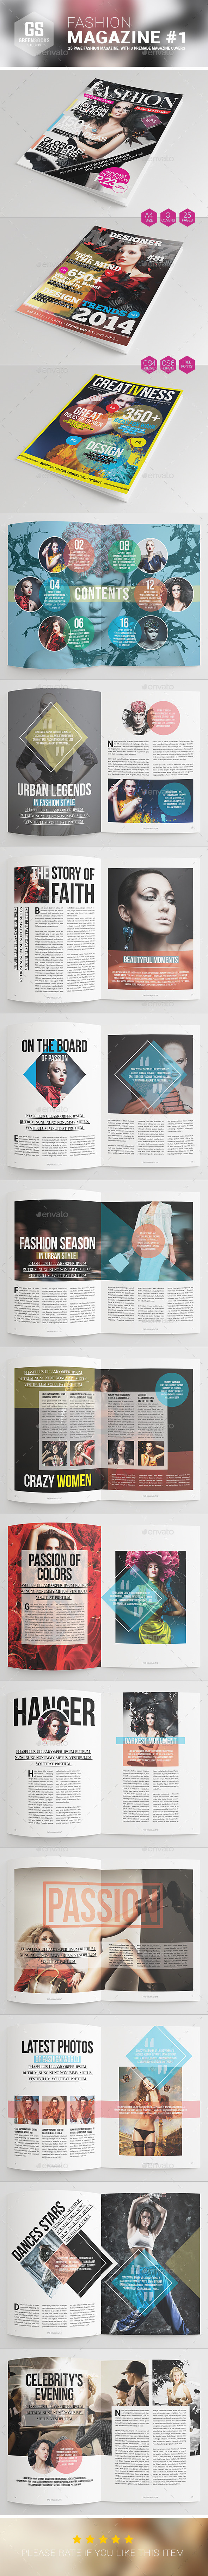 Fashion Magazine #1 - Magazines Print Templates